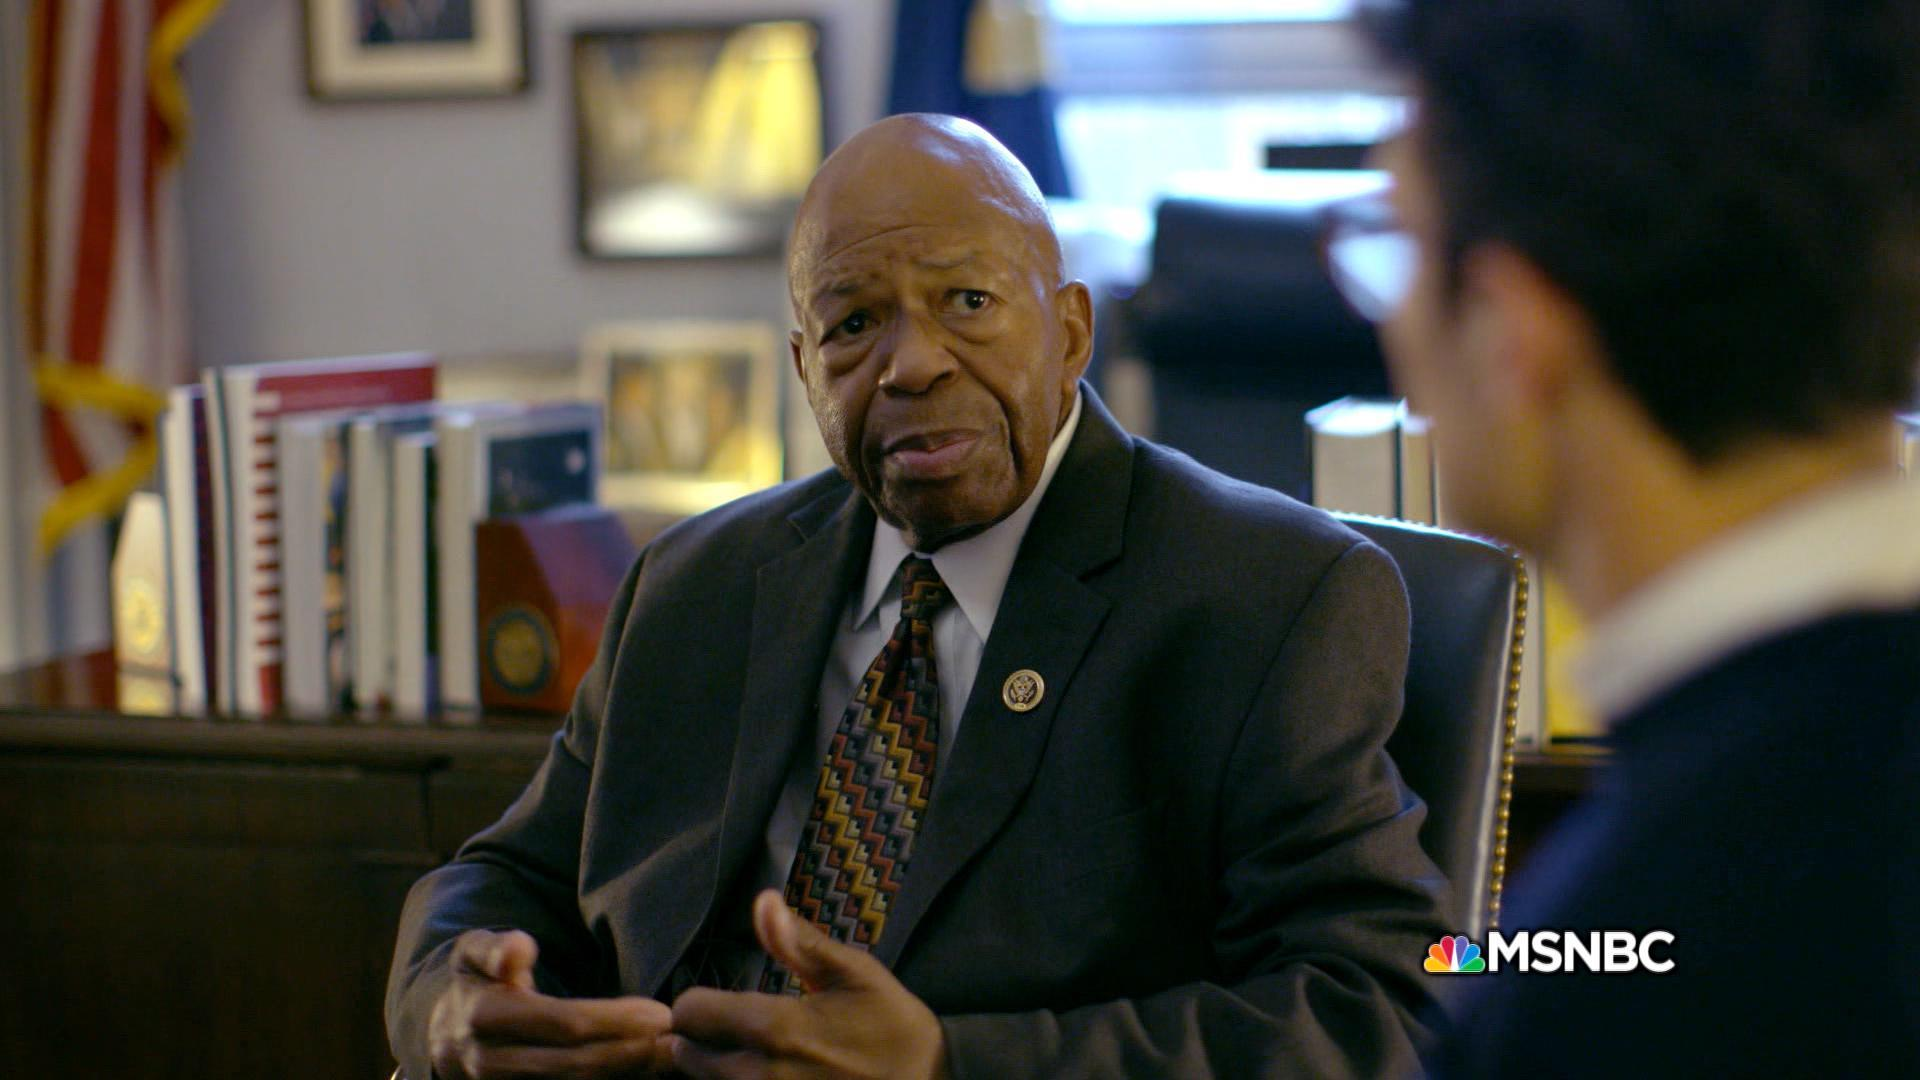 Rep. Cummings on being a check on the executive branch